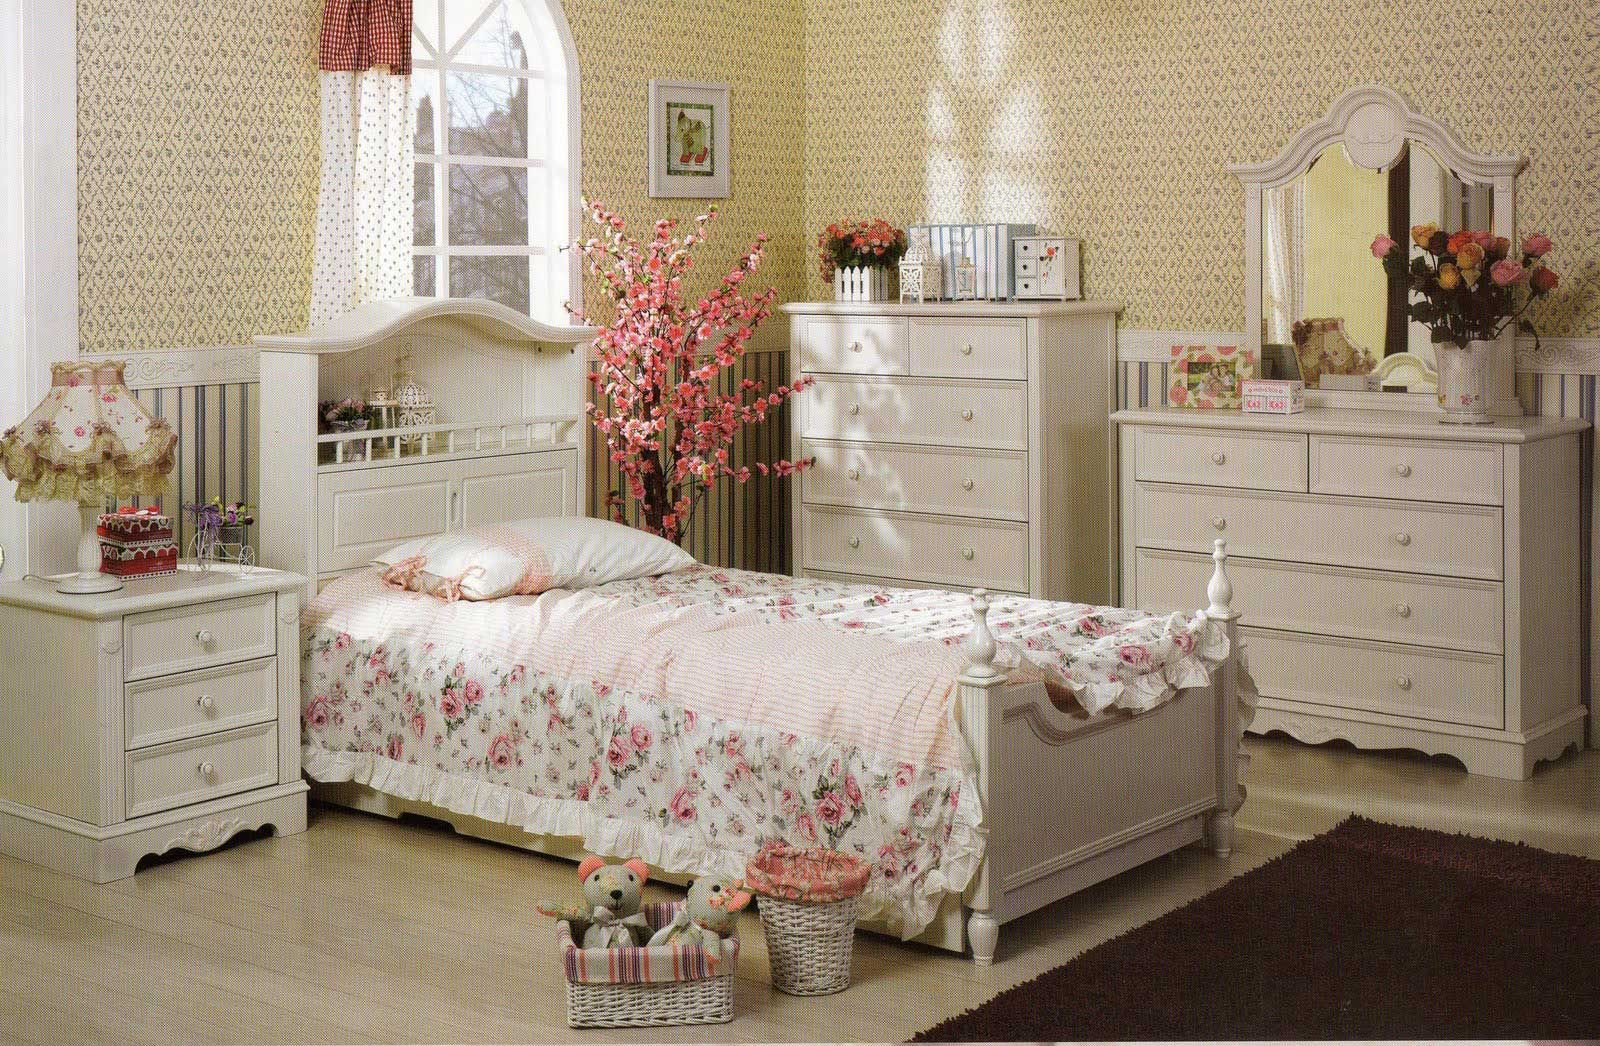 Beautiful Cream Paint Wall Color French Country Bedroom Ideas With White Wood  Furniture Nightstand And Dresser Glass Window Black Roof With Amazing  Interior Design